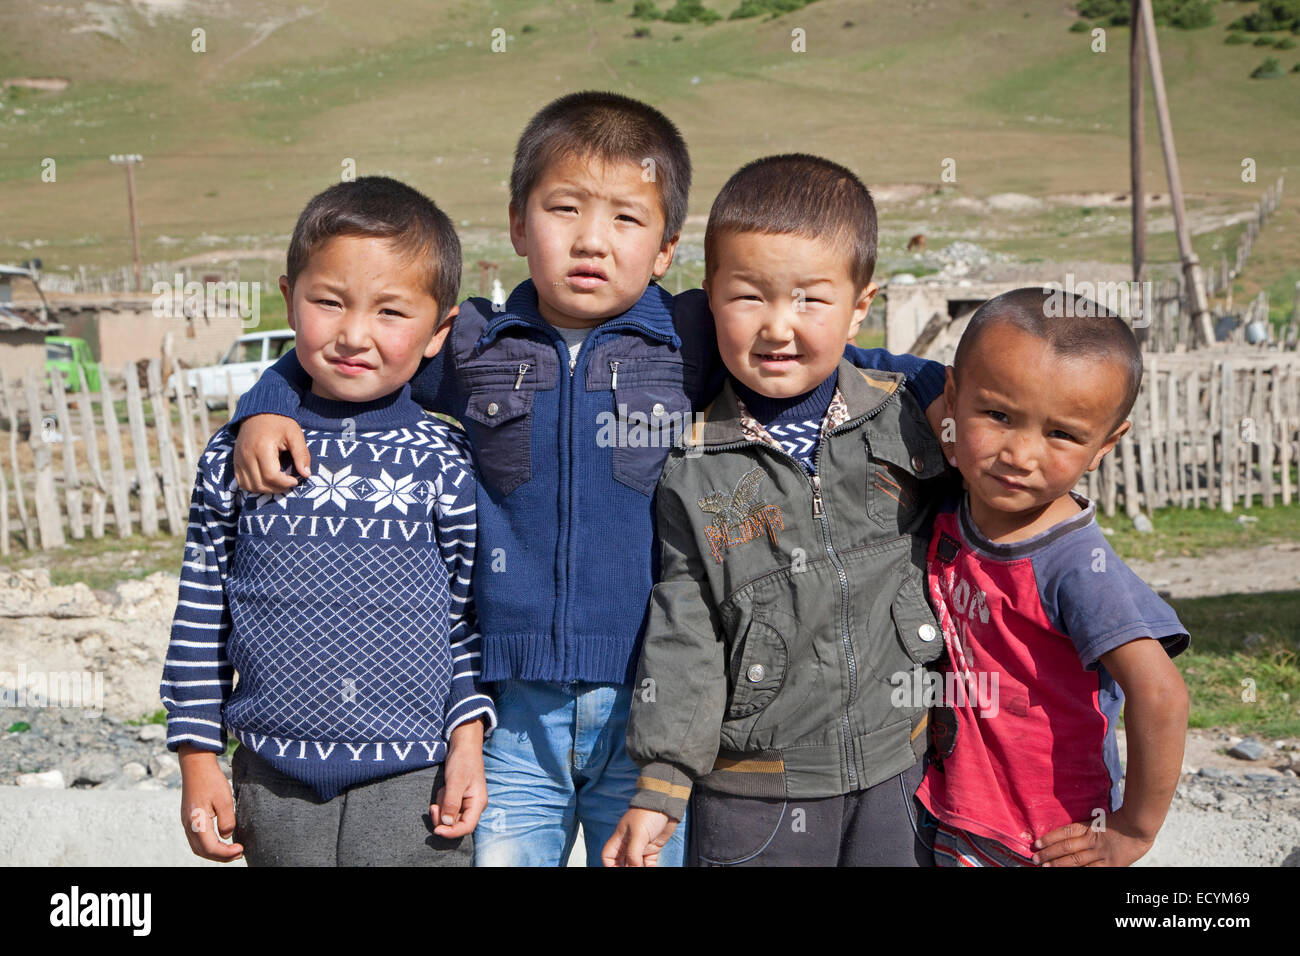 Four young Kyrgyz boys showing Chinese features, Osh Province, Kyrgyzstan - Stock Image